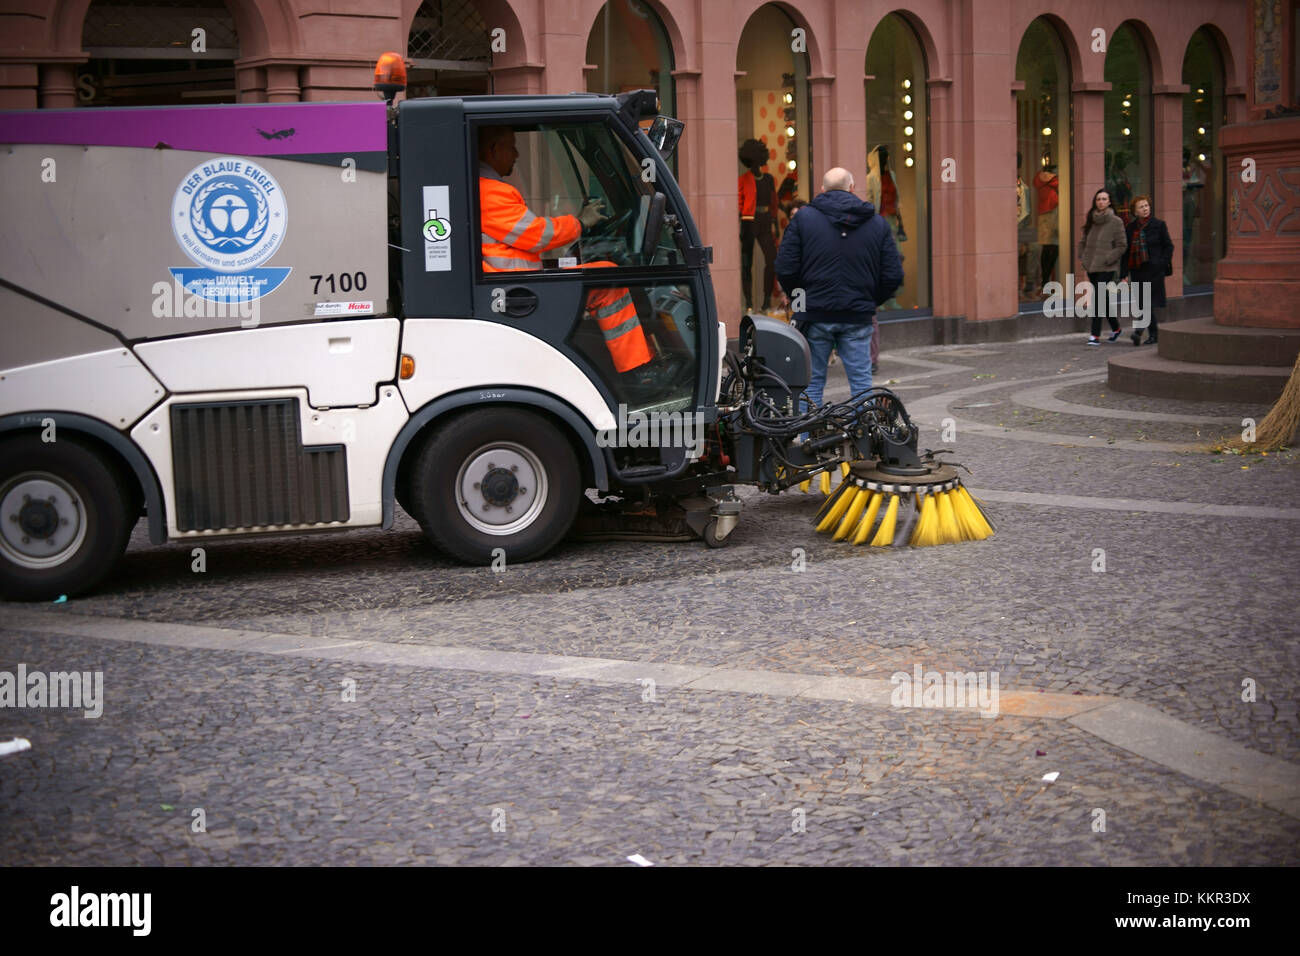 An environmentally friendly street cleaning vehicle cleaning the ground of the marketplace after the weekly market - Stock Image